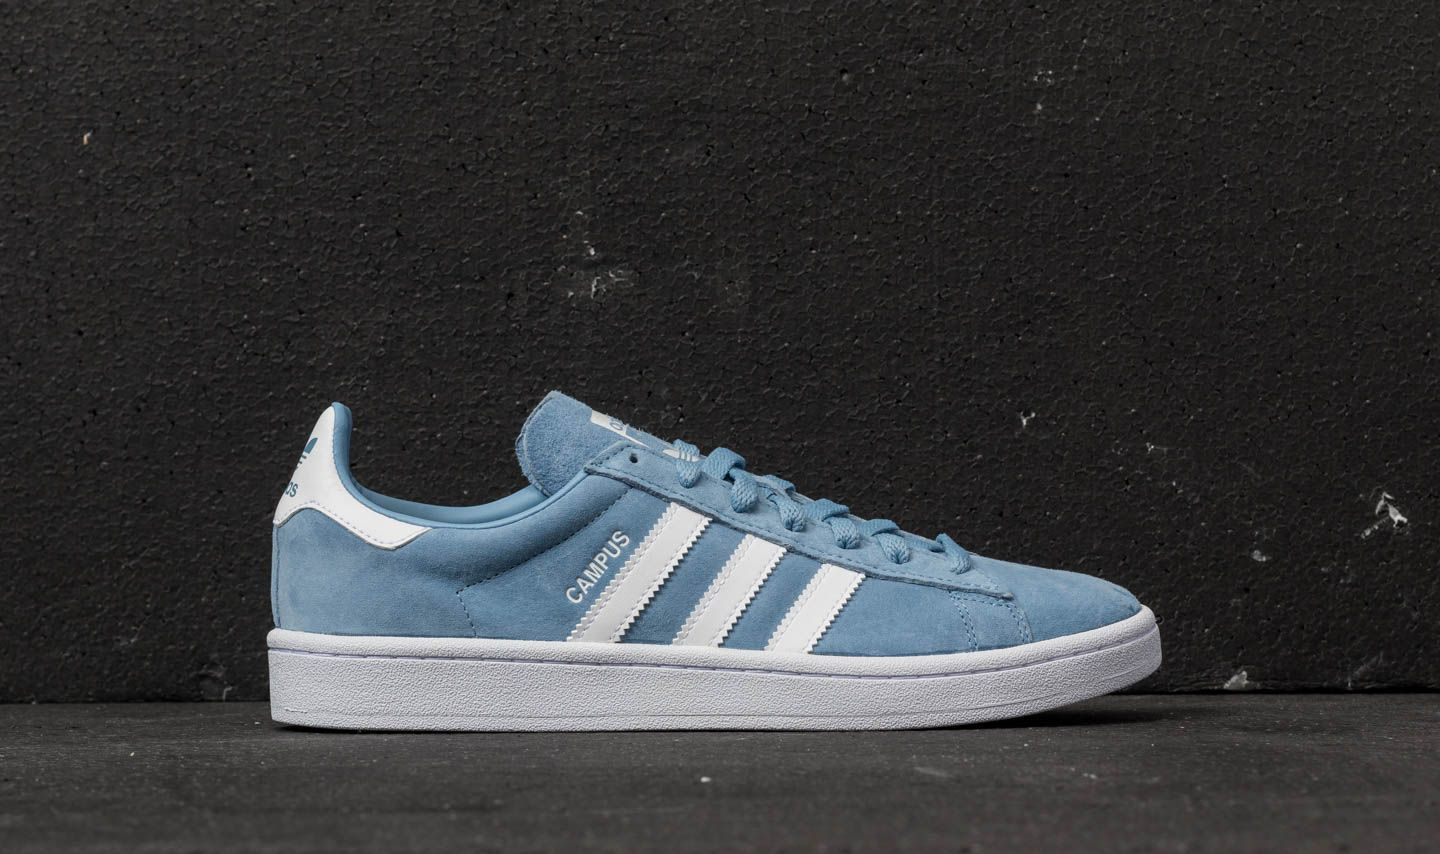 841a14a4b42983 adidas Campus Ash Blue  Ftw White  Ftw White at a great price £45